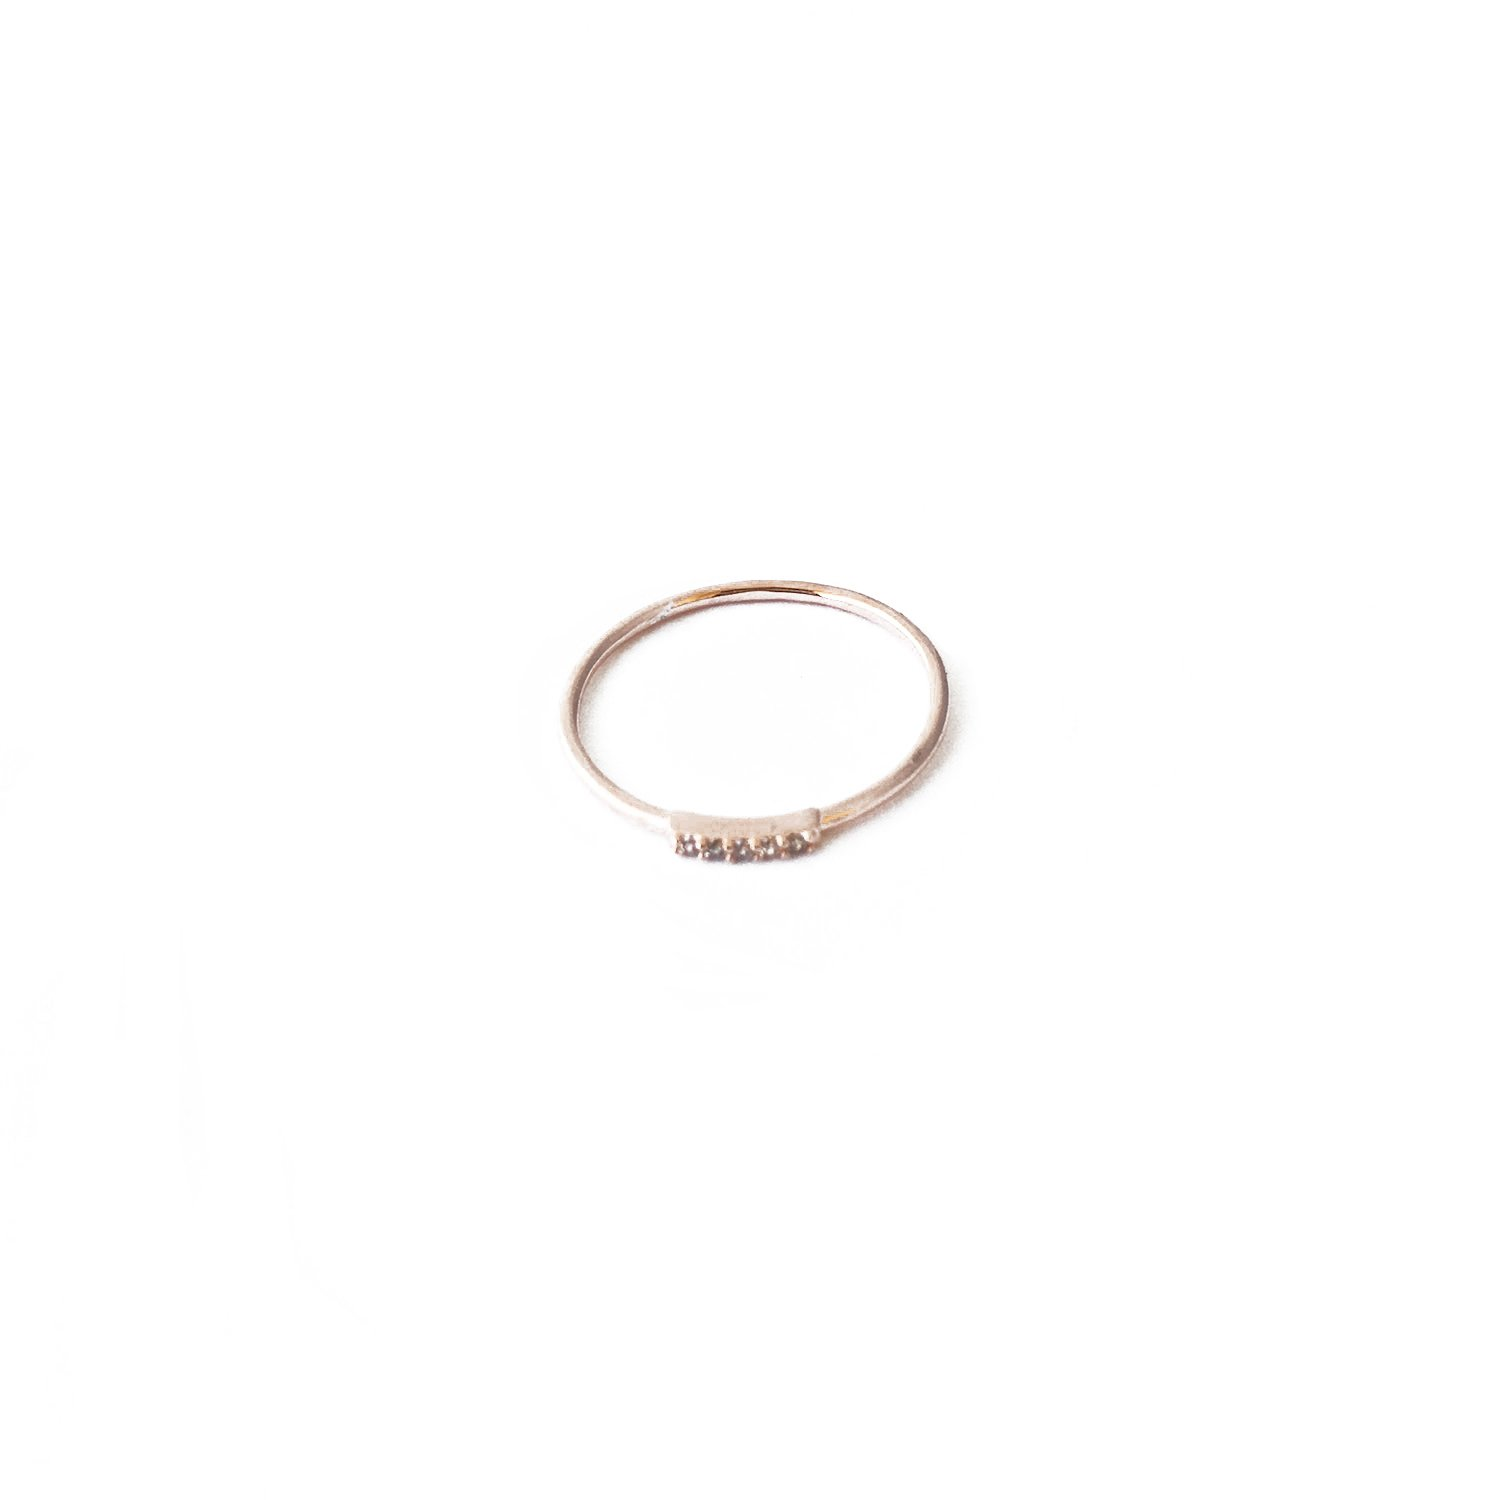 HONEYCAT Mini Crystal Row Ring in 18k Rose Gold Plate | Minimalist, Delicate Jewelry (Rose Gold 8)